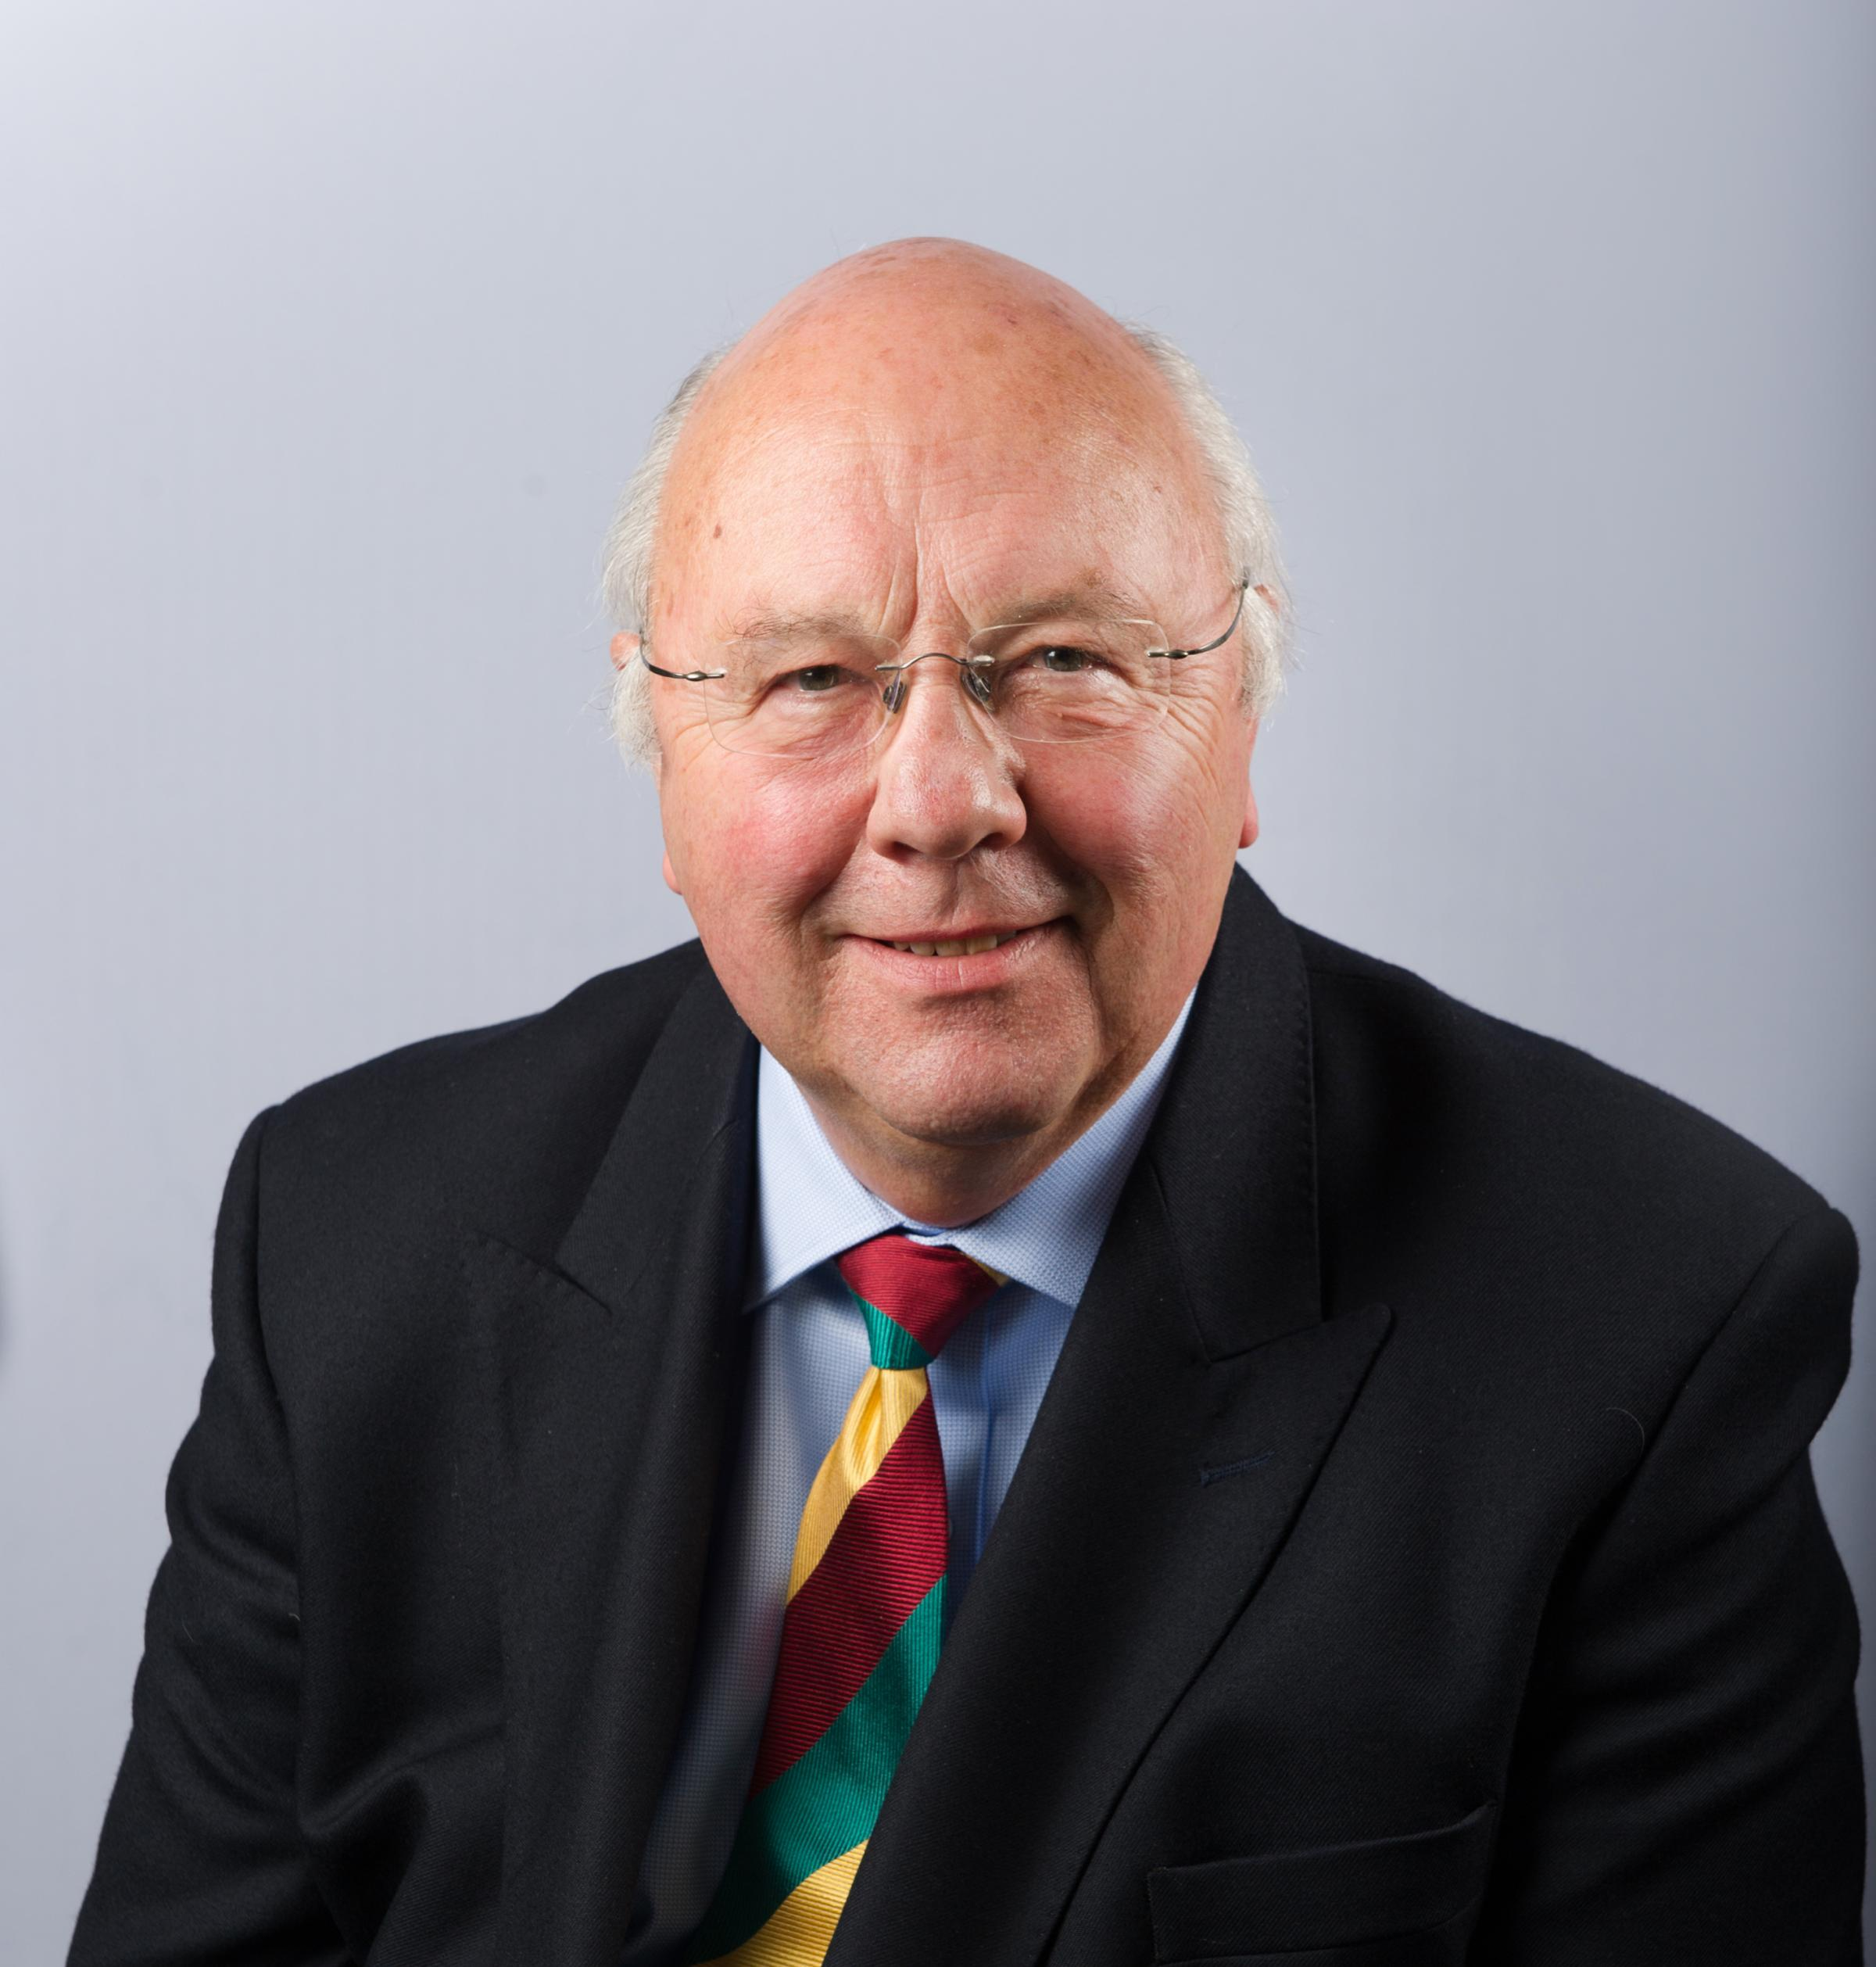 Cllr Clive Sanders